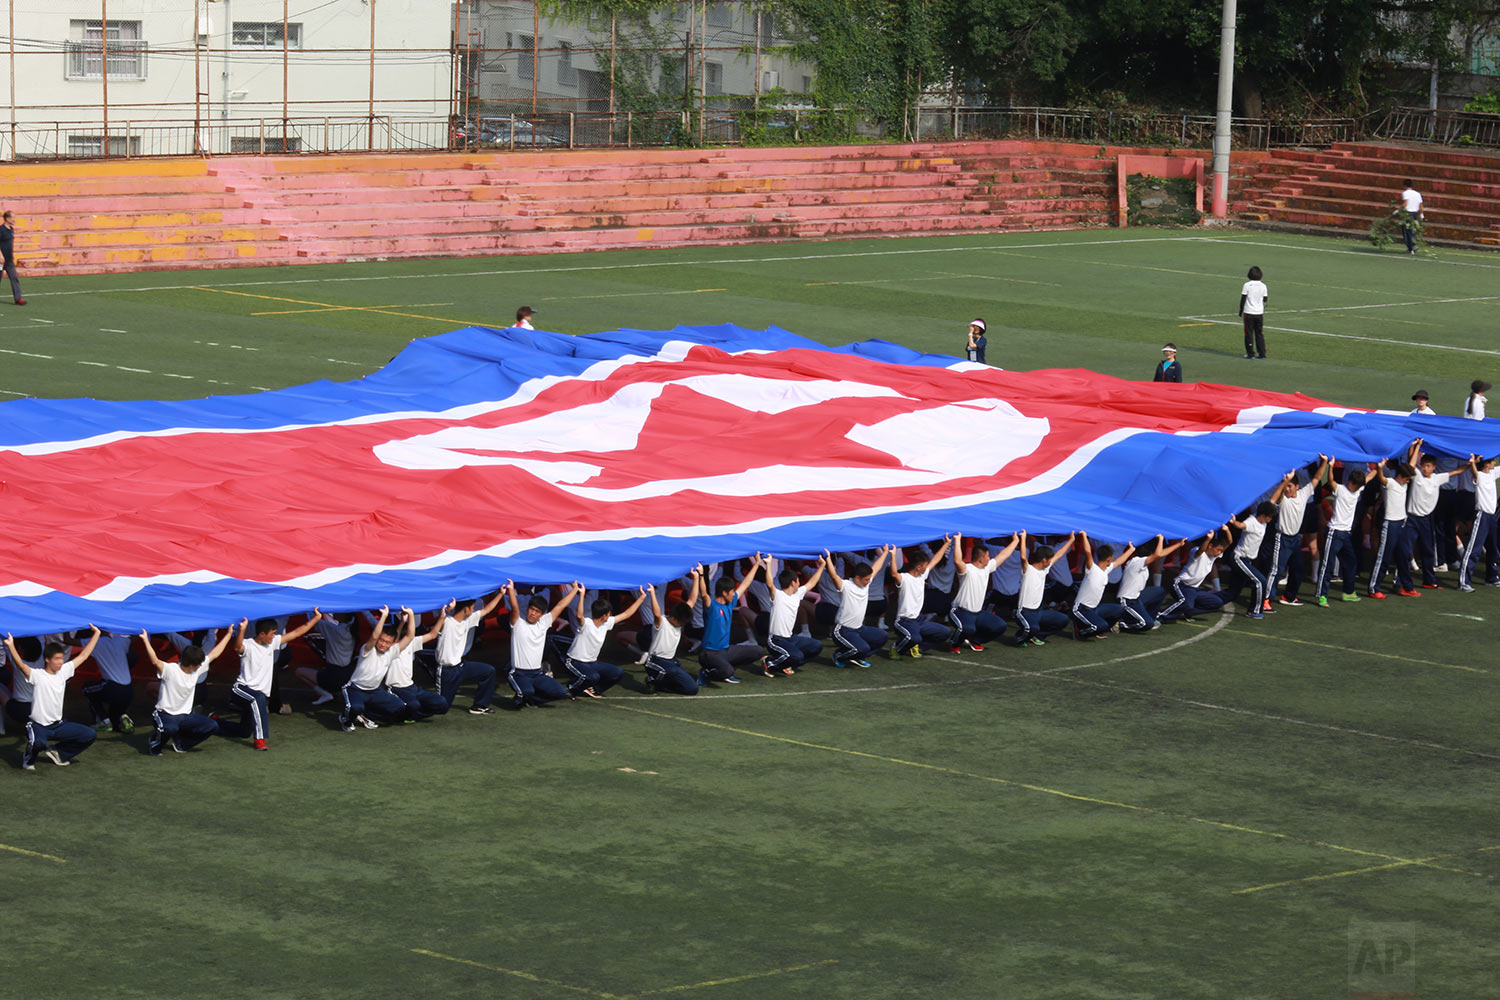 In this Sept. 26, 2017, photo, a student flag team practices a performance waving red, white and blue banners to form th North Korea national flag at a Tokyo Korean high school in Tokyo. (AP Photo/Eugene Hoshiko)